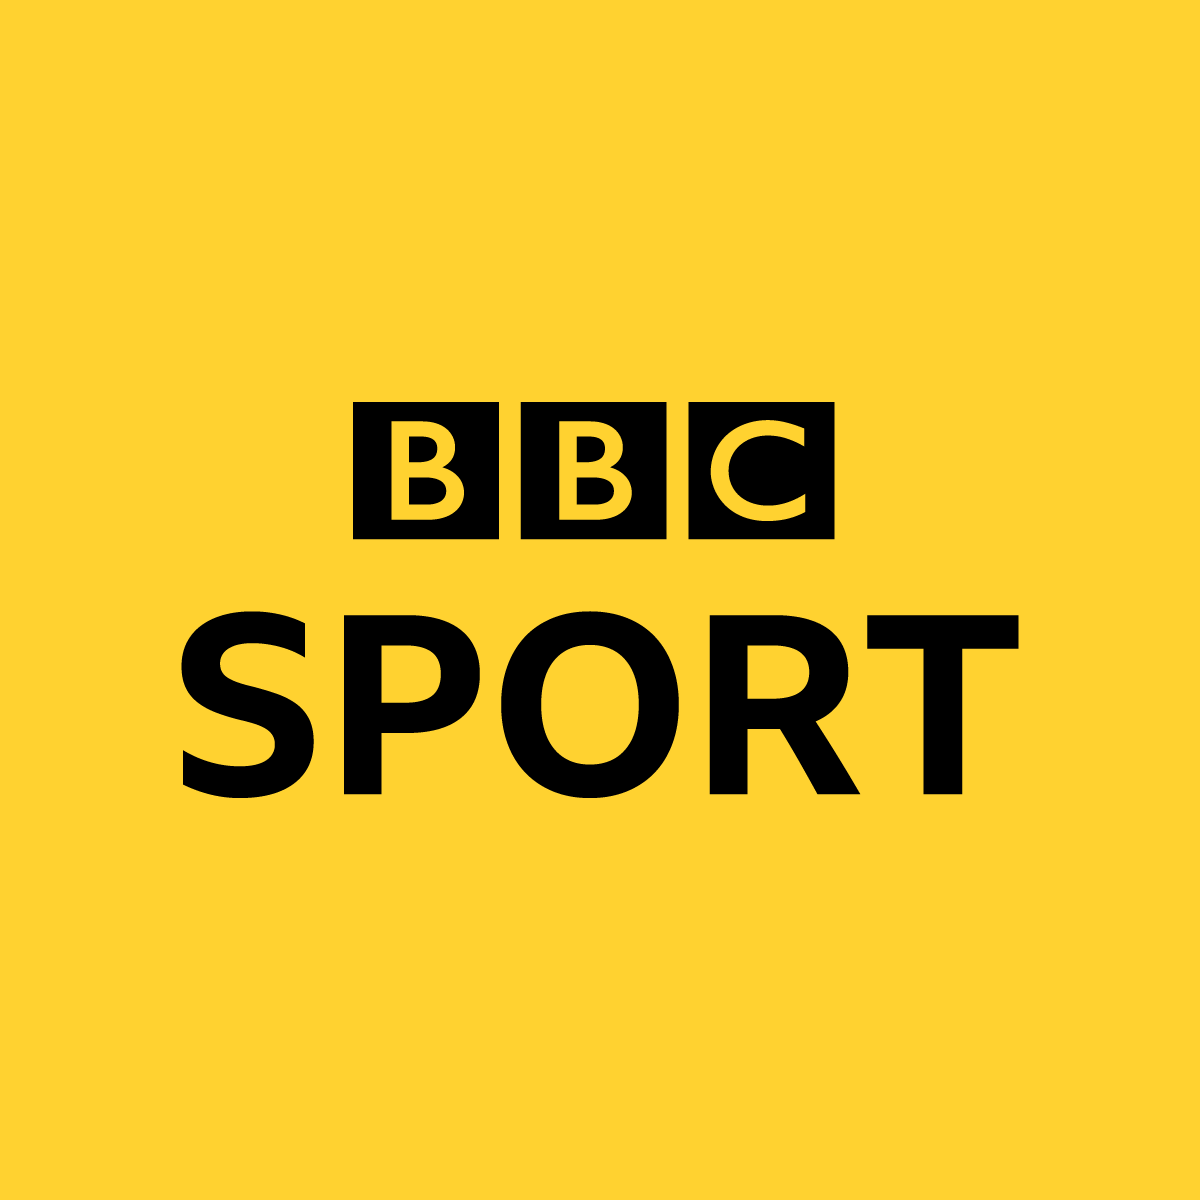 England's Pitchford wins points with outrageous behind-the-back trick shots - BBC Sport thumbnail